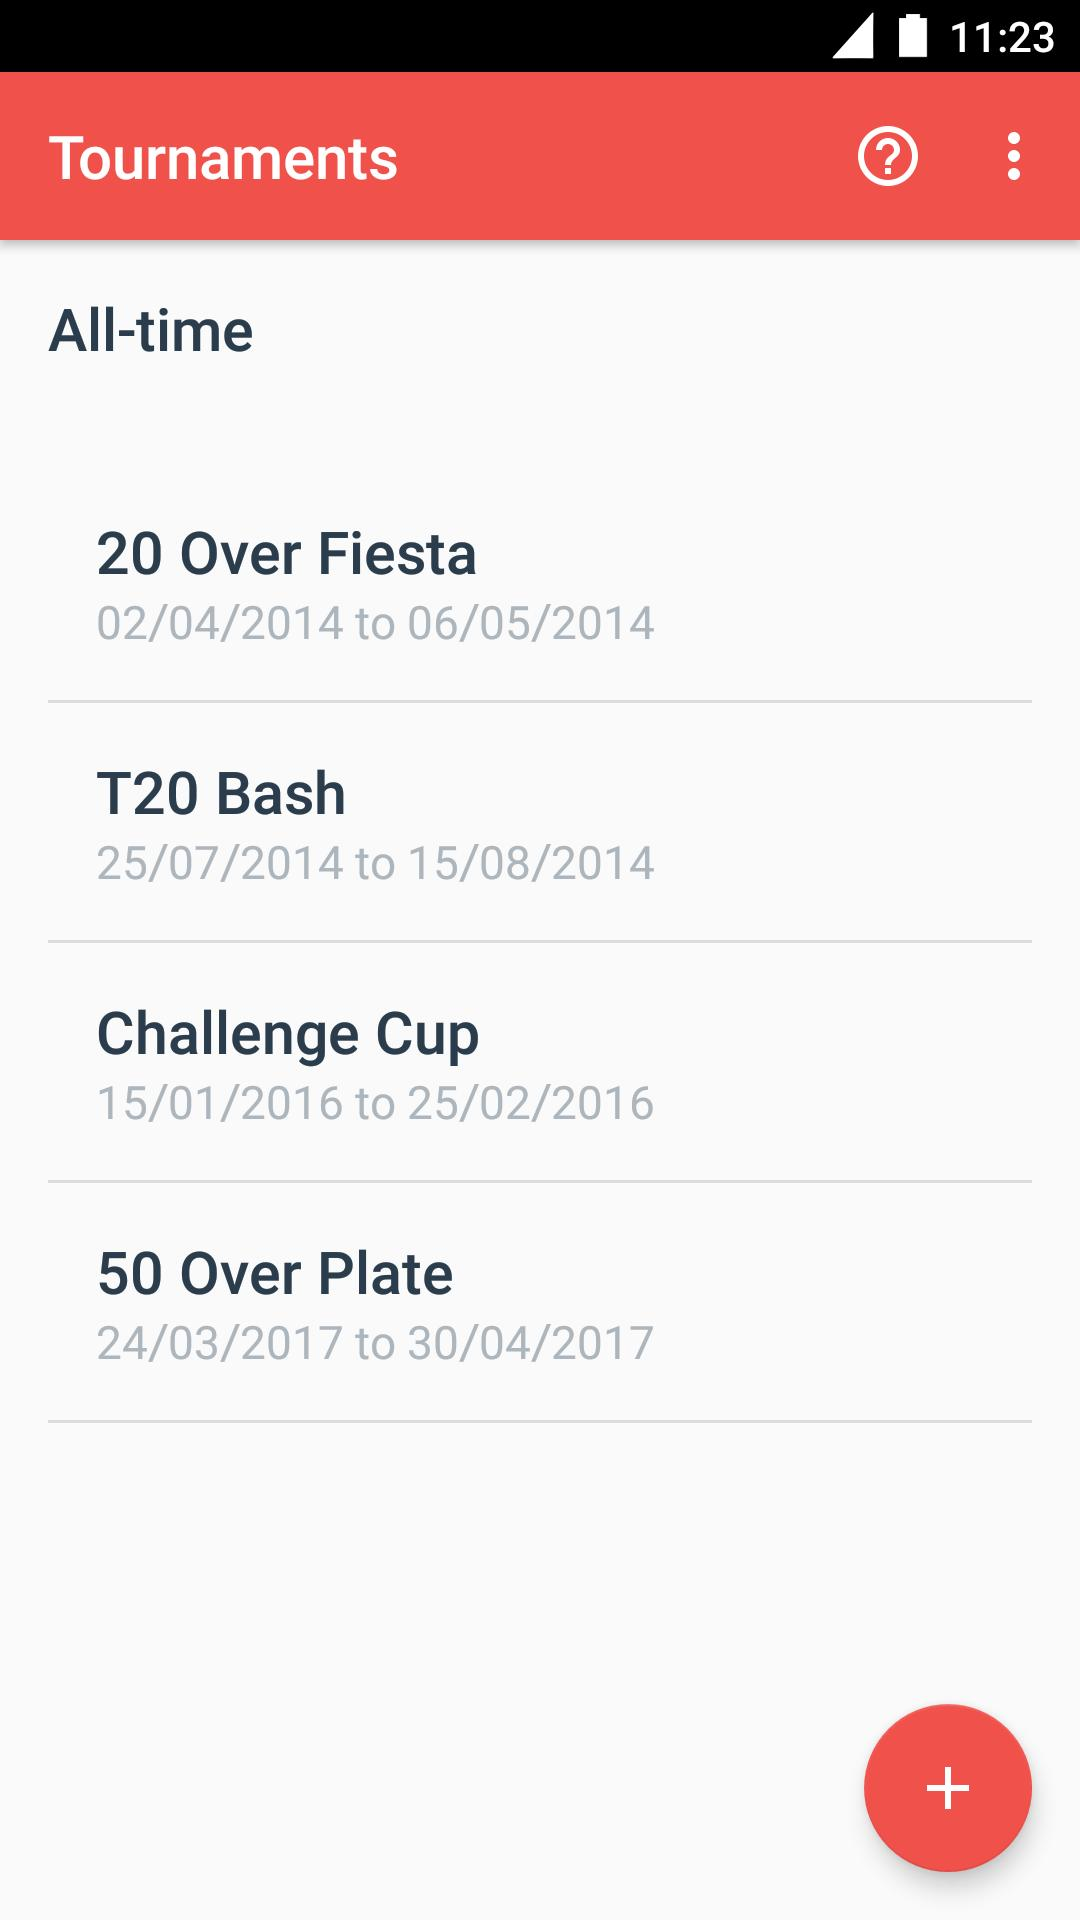 Cricket Career Statistics Tracker for Android - APK Download